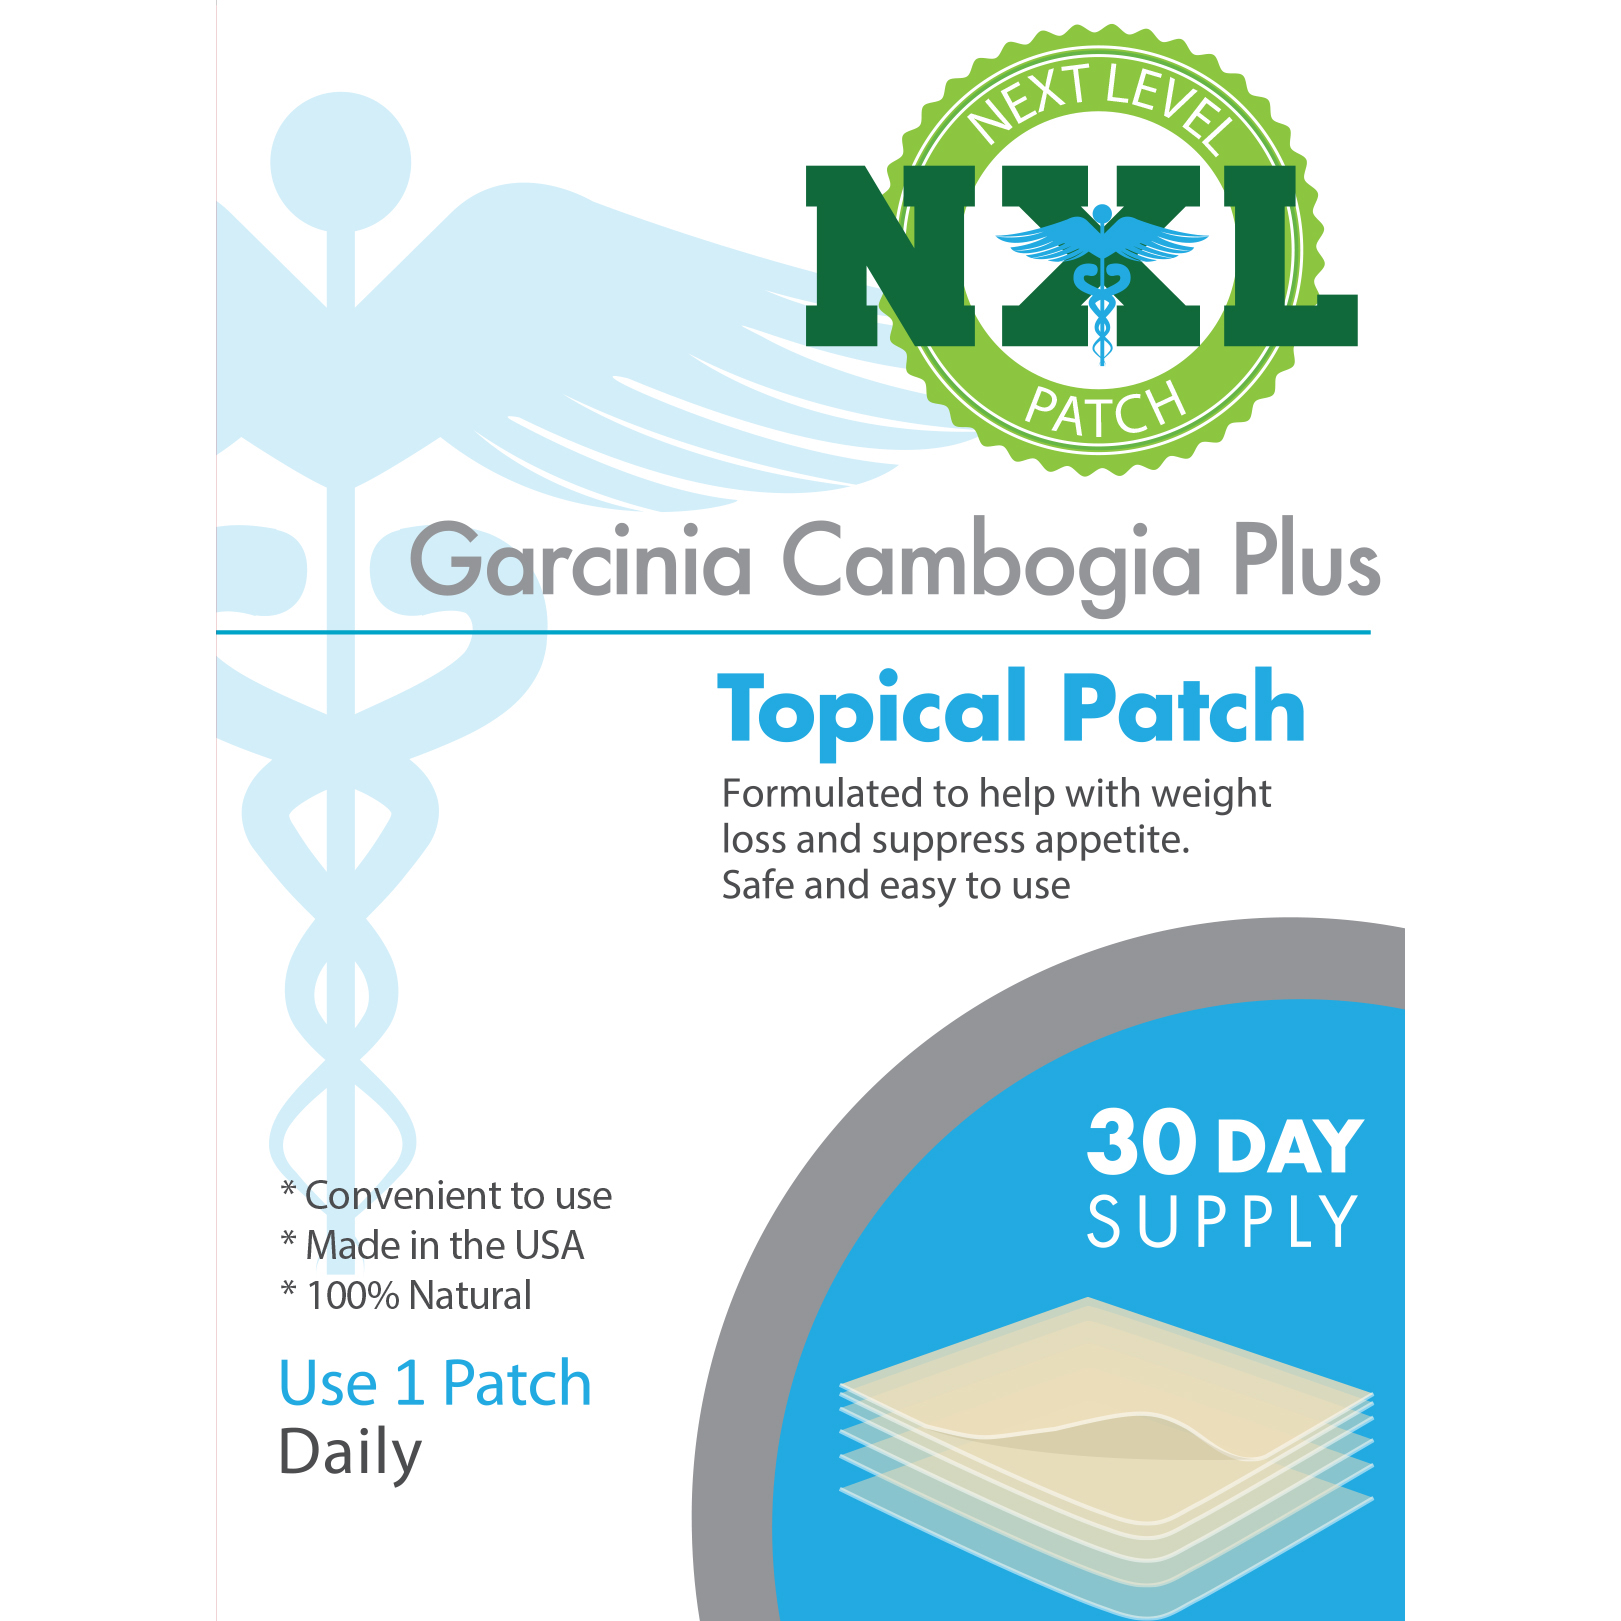 Garcinia Cambogia Plus Nxl Patches